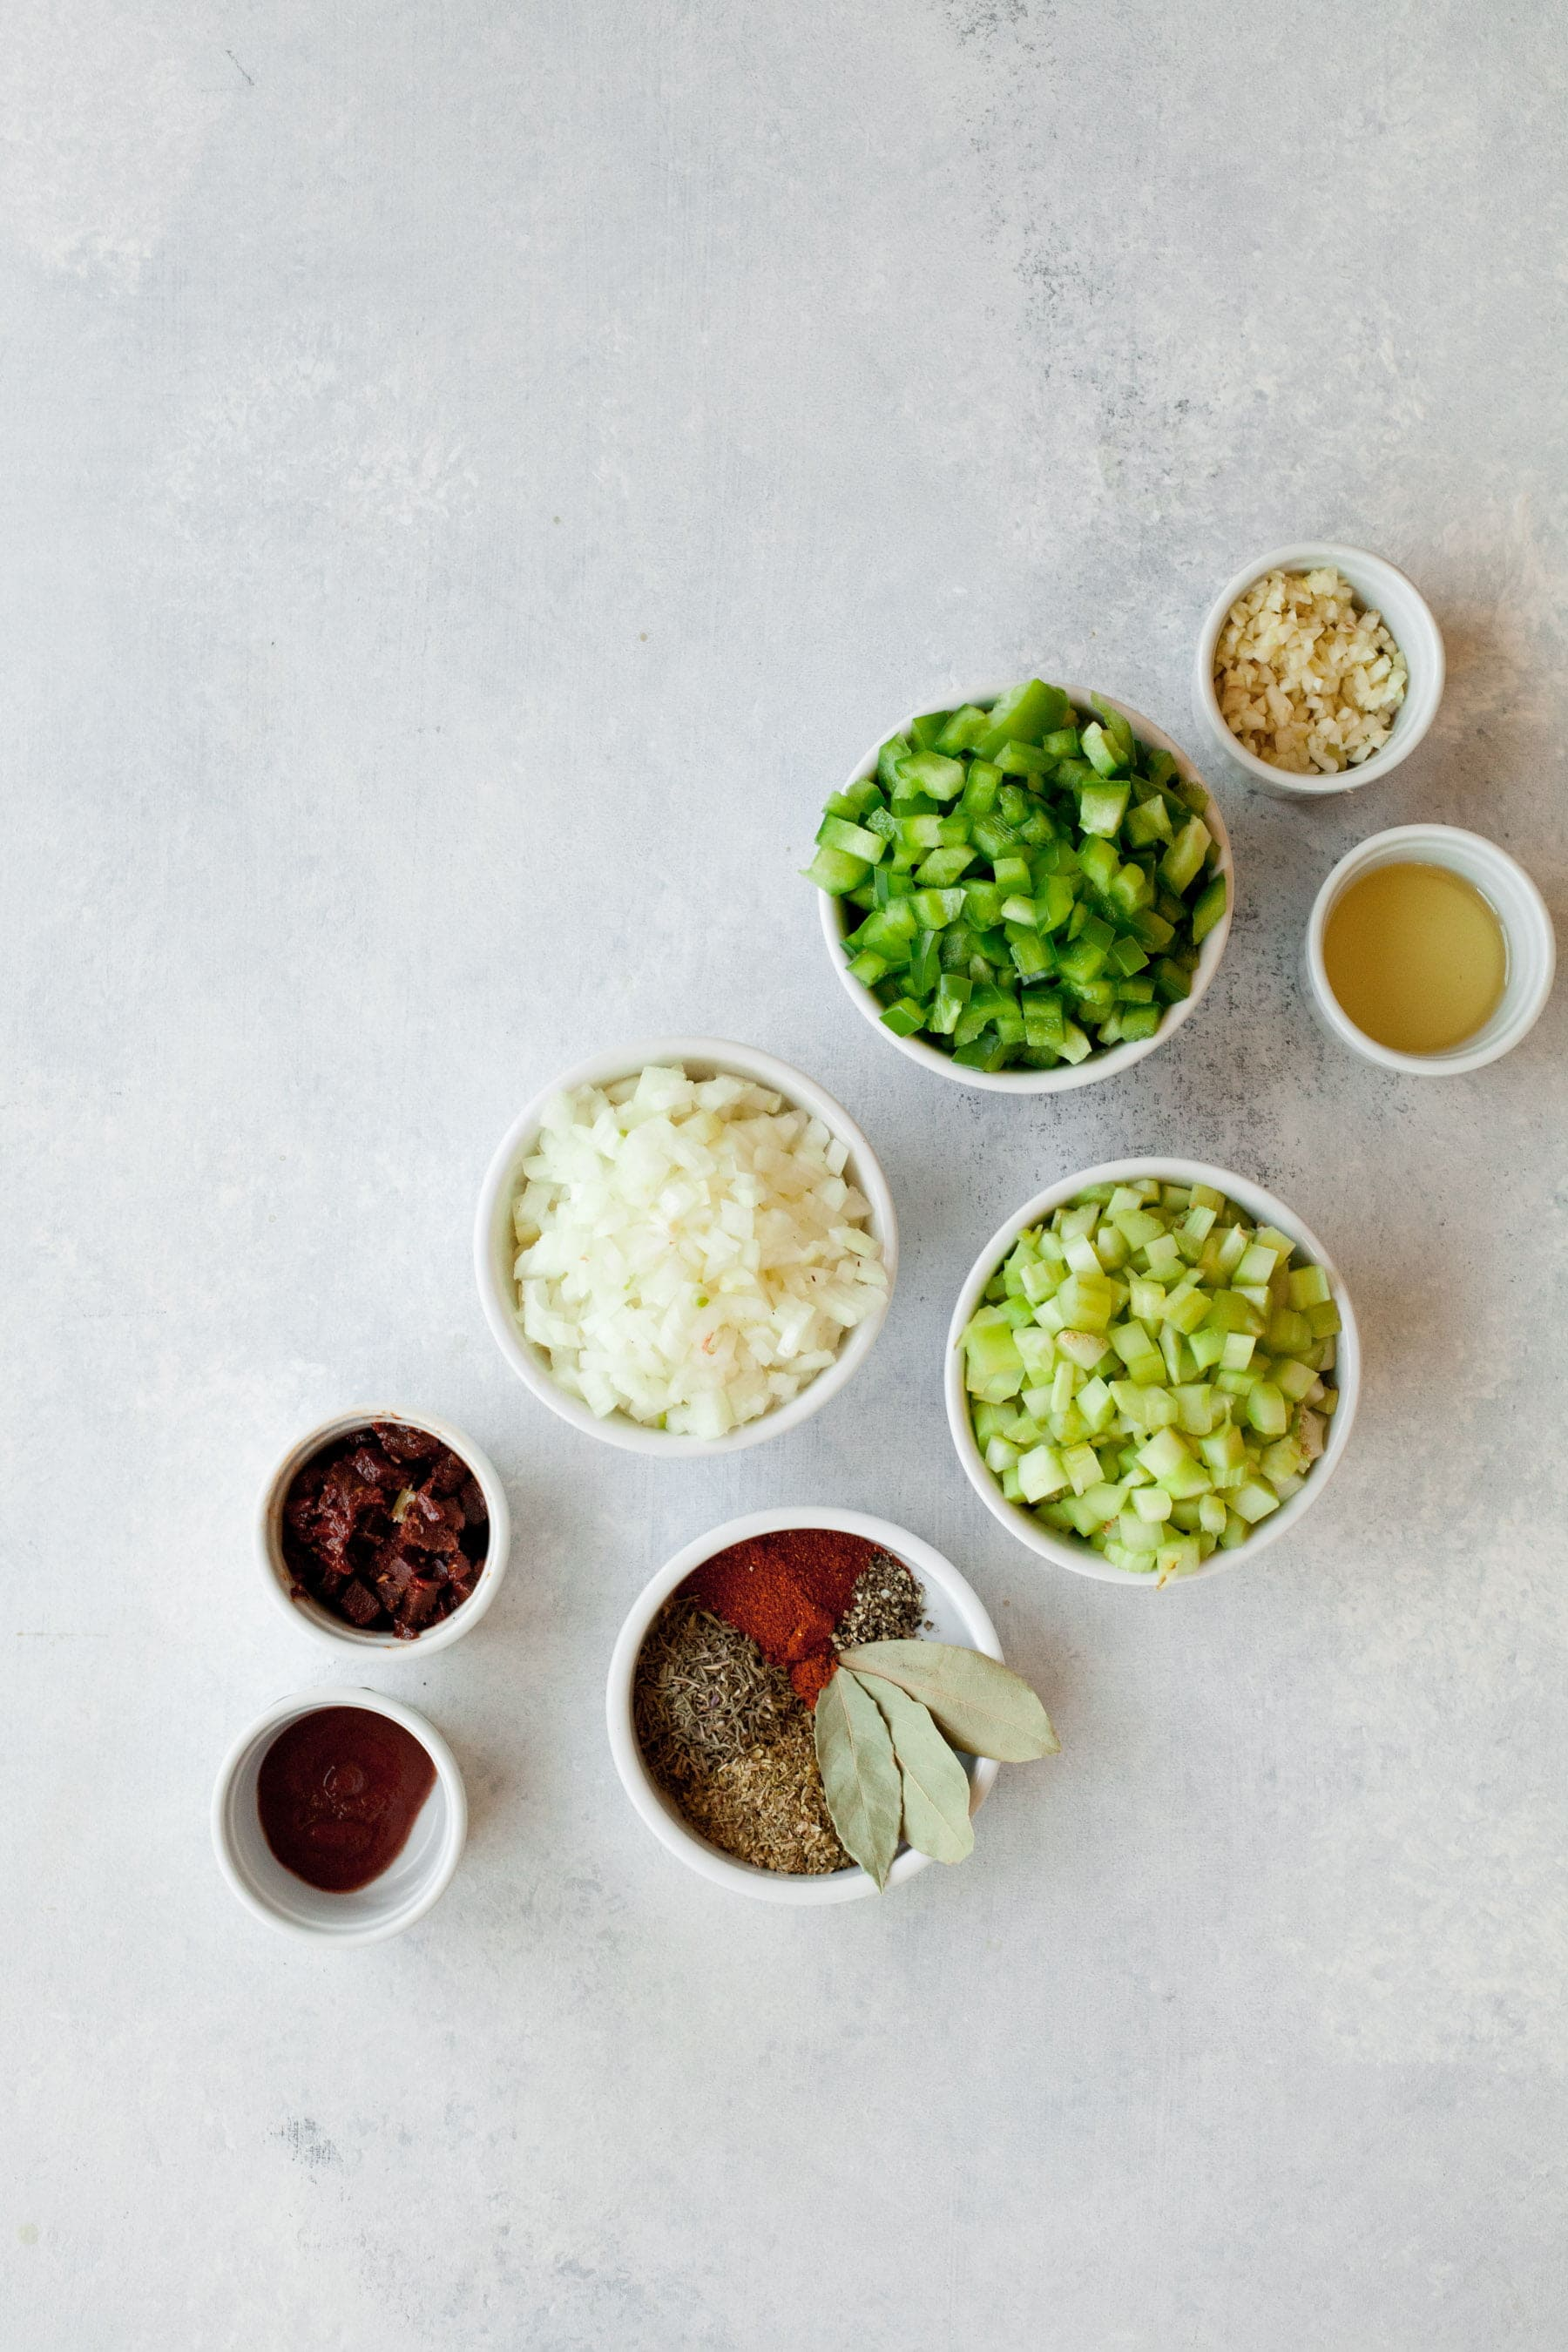 Ingredients for a Vegan Red Beans and Rice recipe in individual bowls